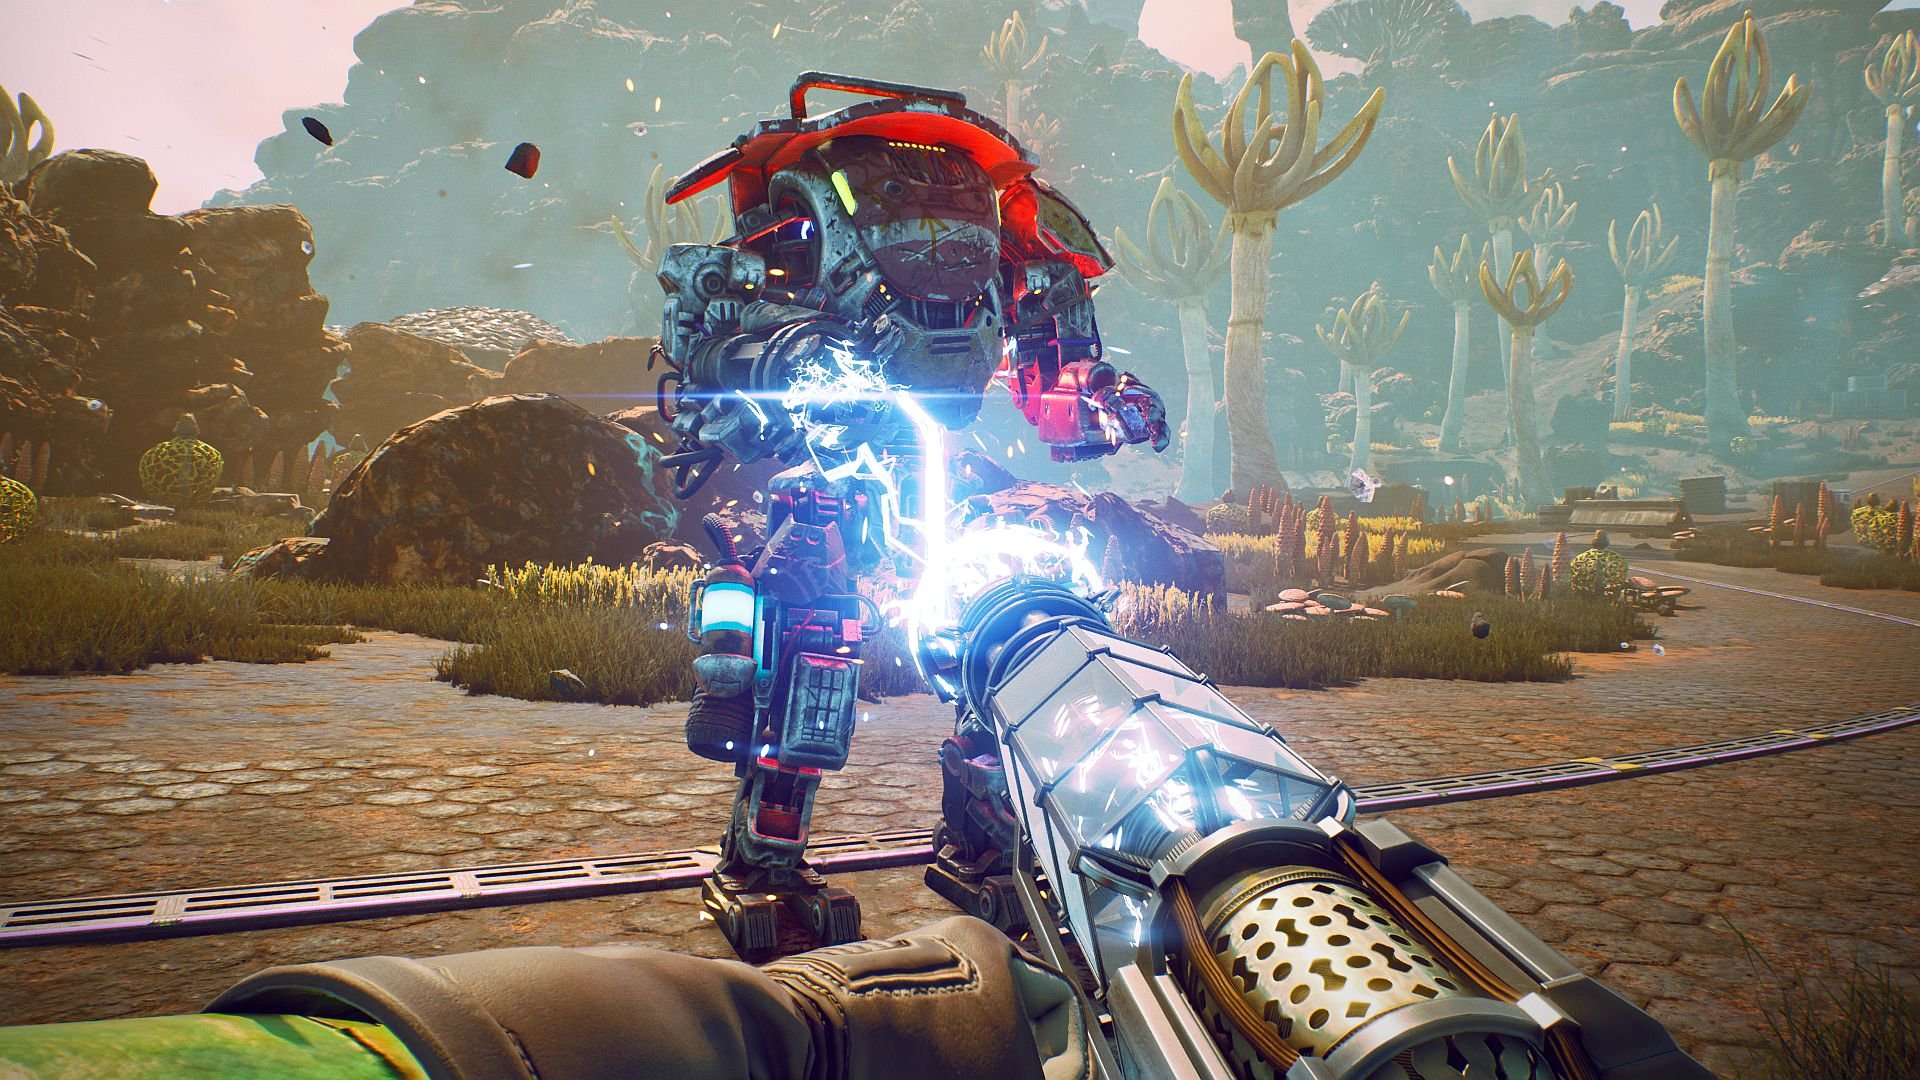 Here are 20 more minutes of The Outer Worlds gameplay from TGS